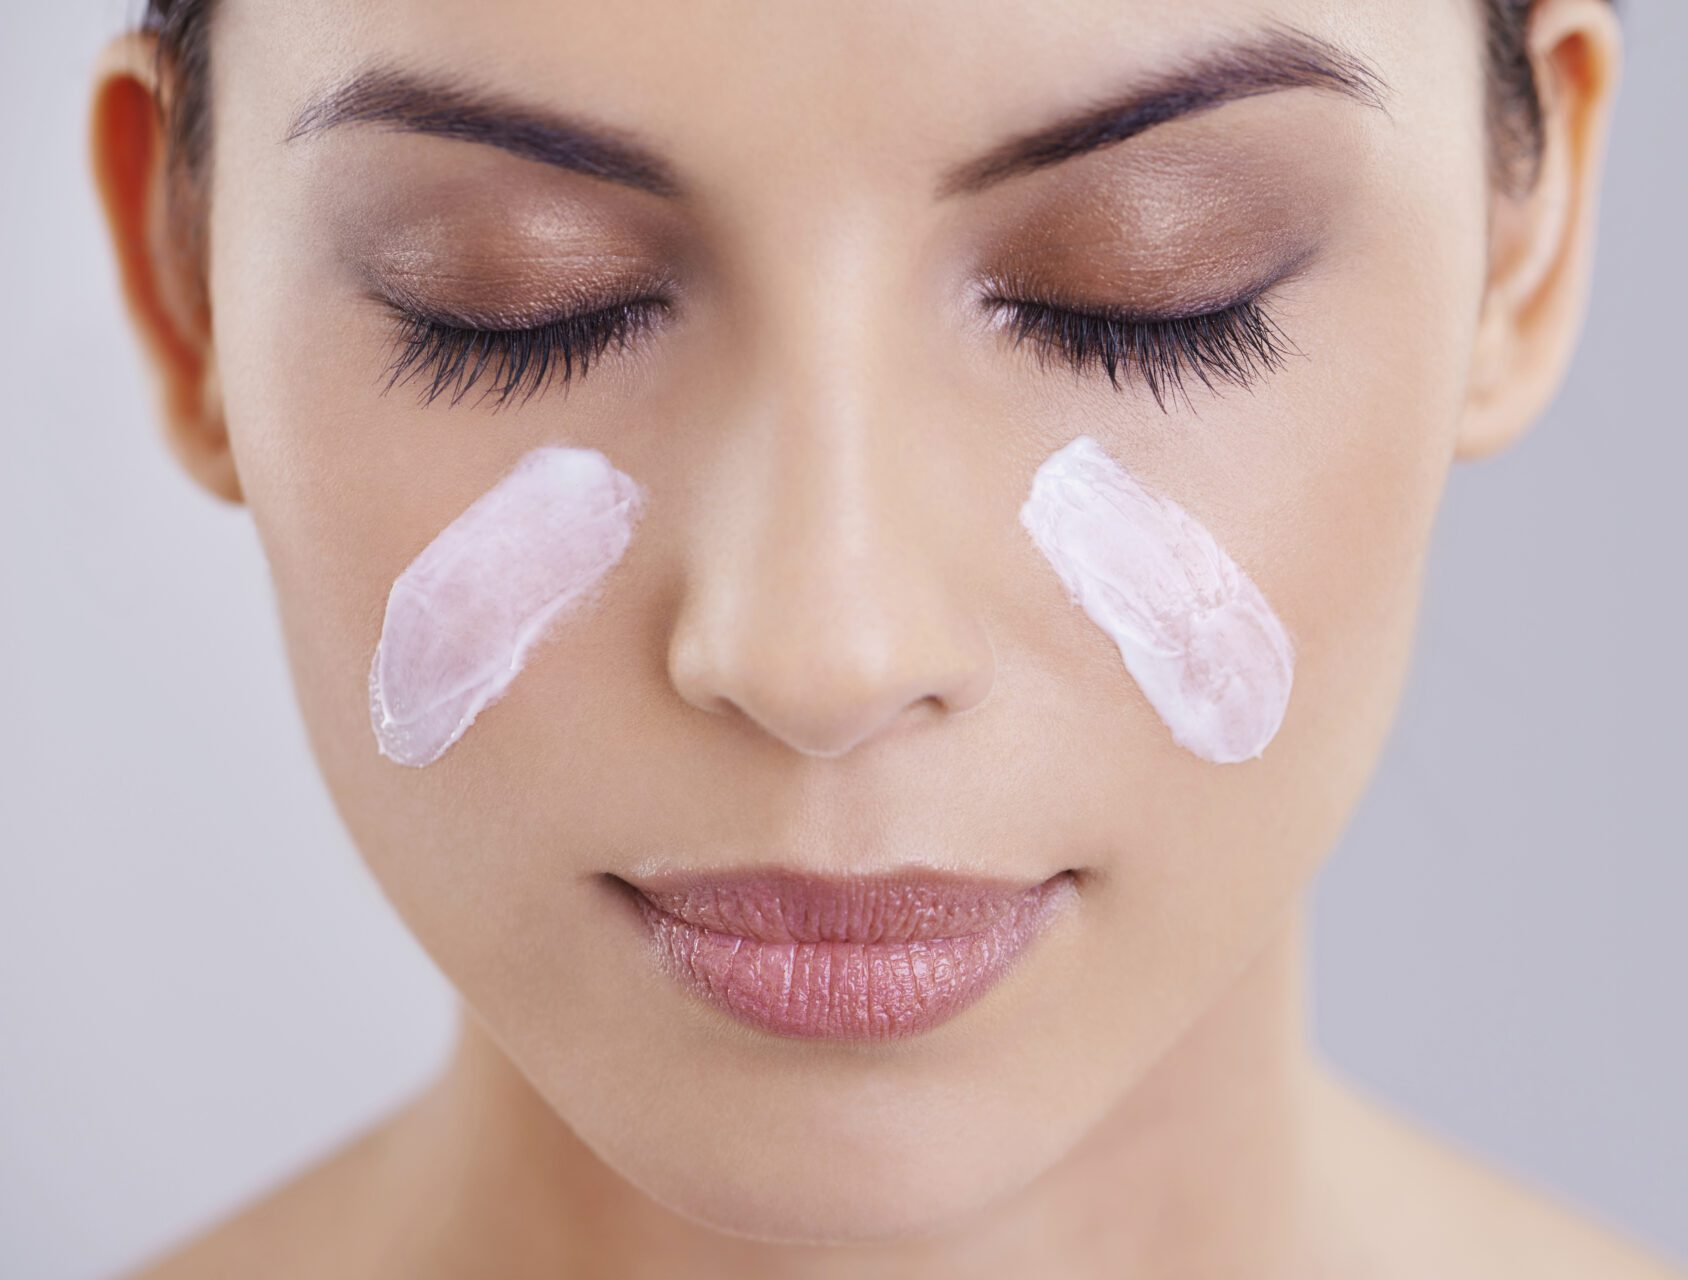 Exfoliating Your Skin to Reveal a Younger You